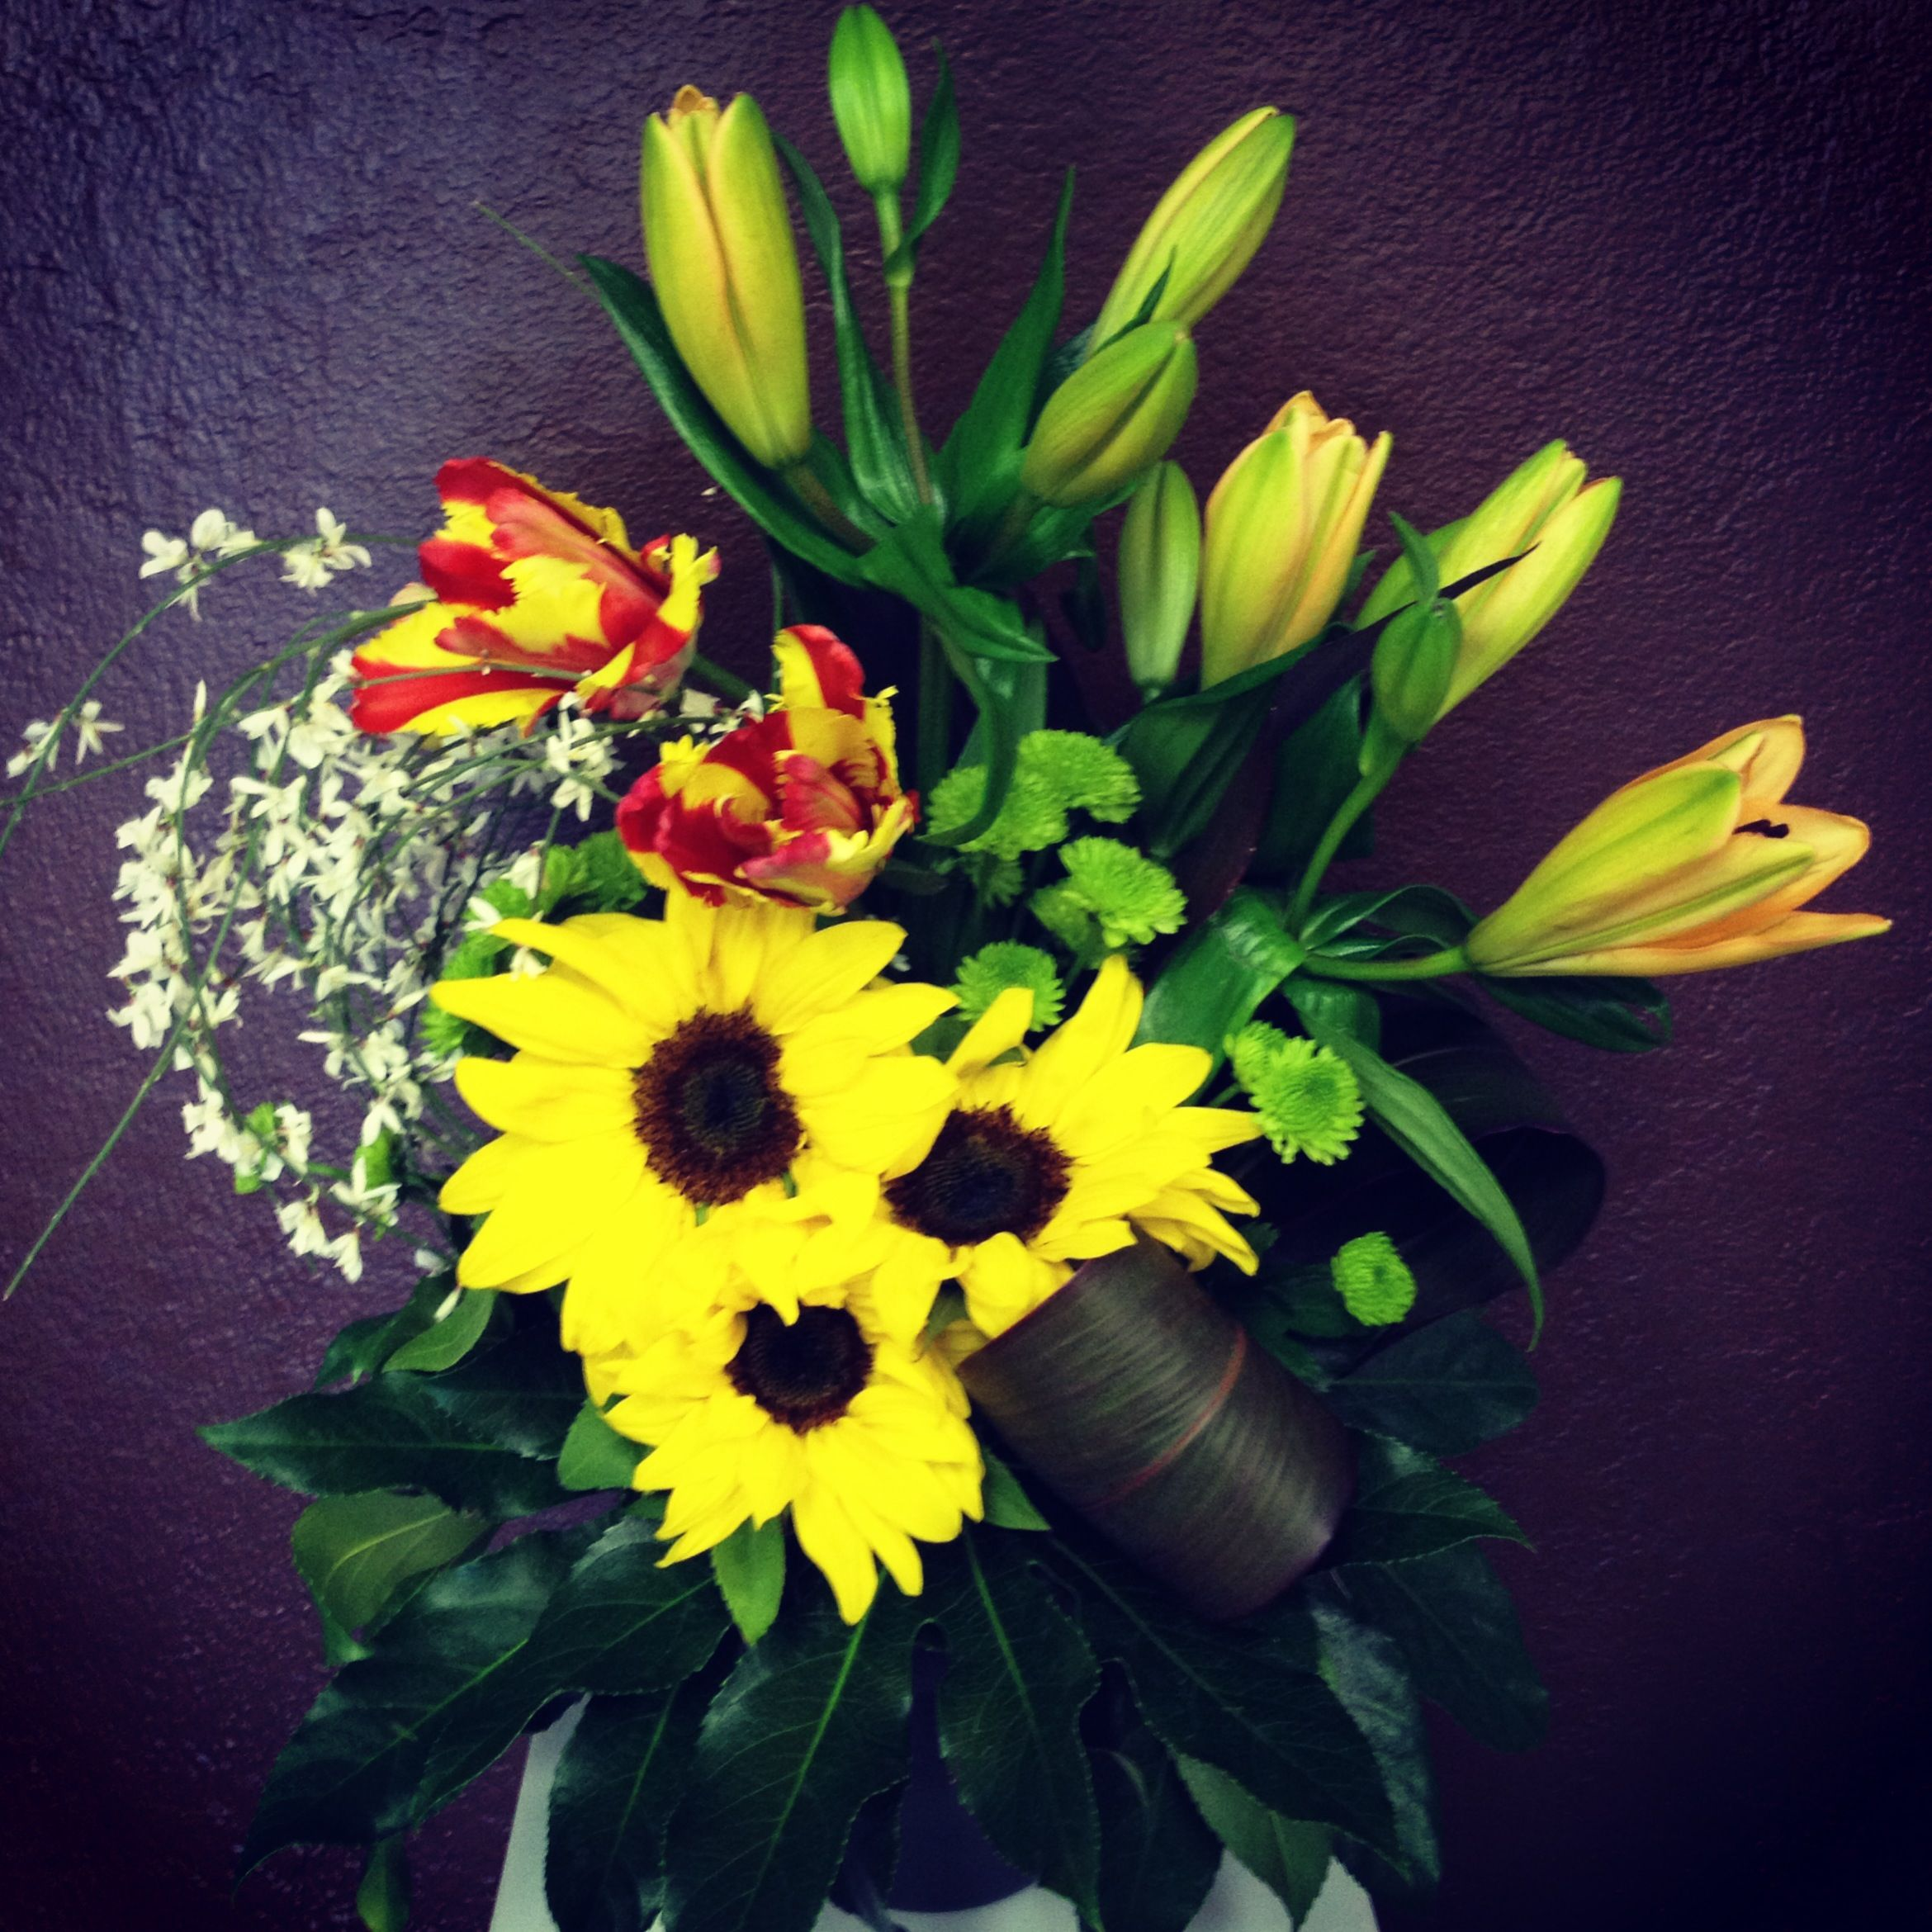 Sunflower, lilies and parrot tulips. Parrot tulips